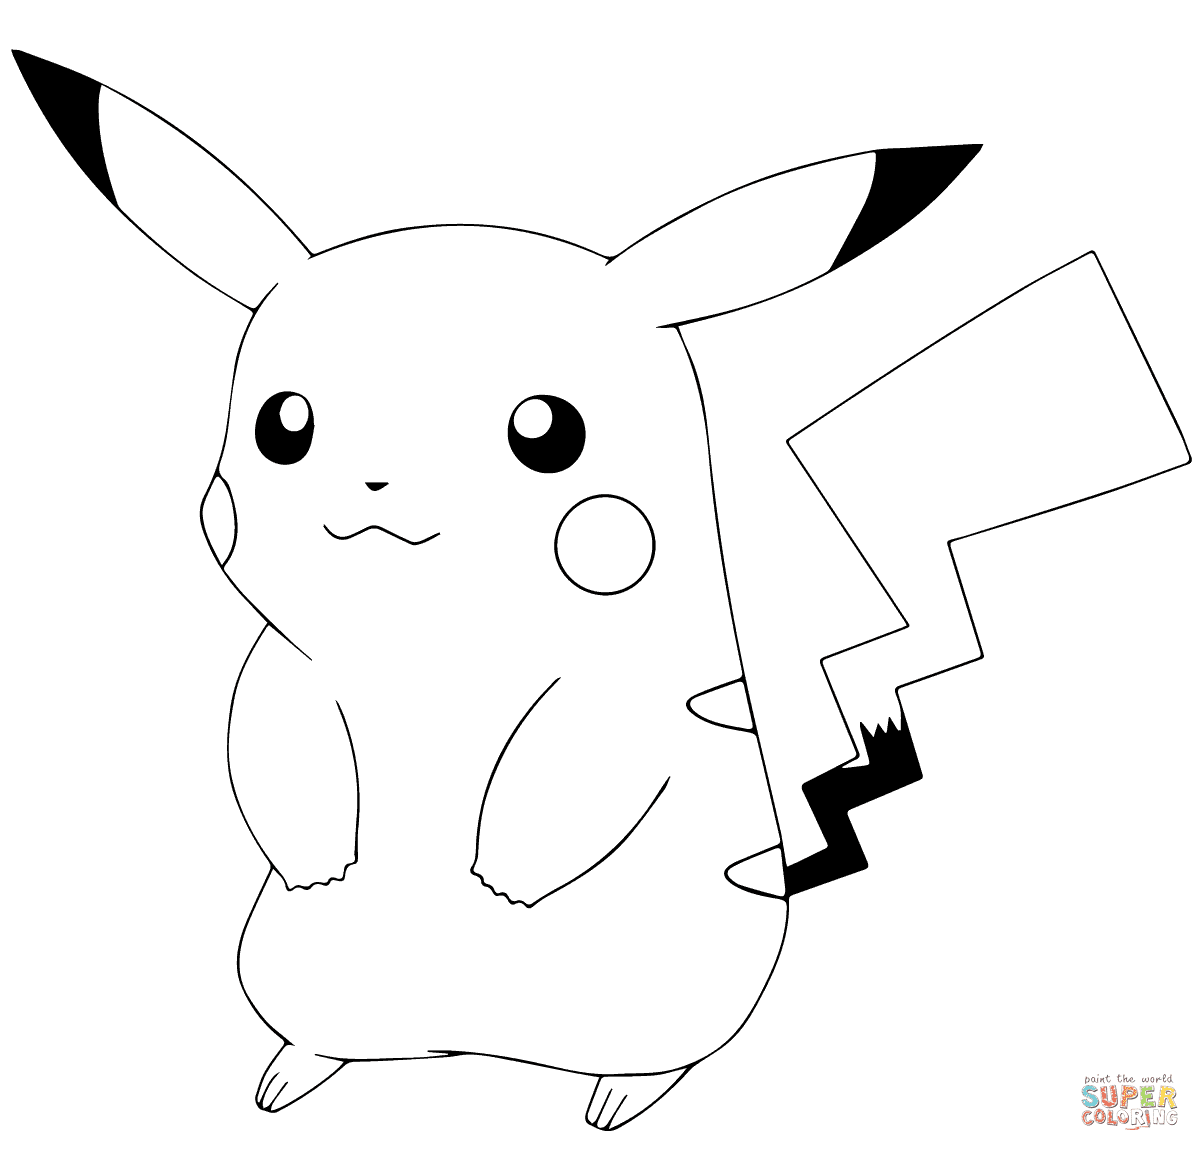 the Pokémon GO Pikachu